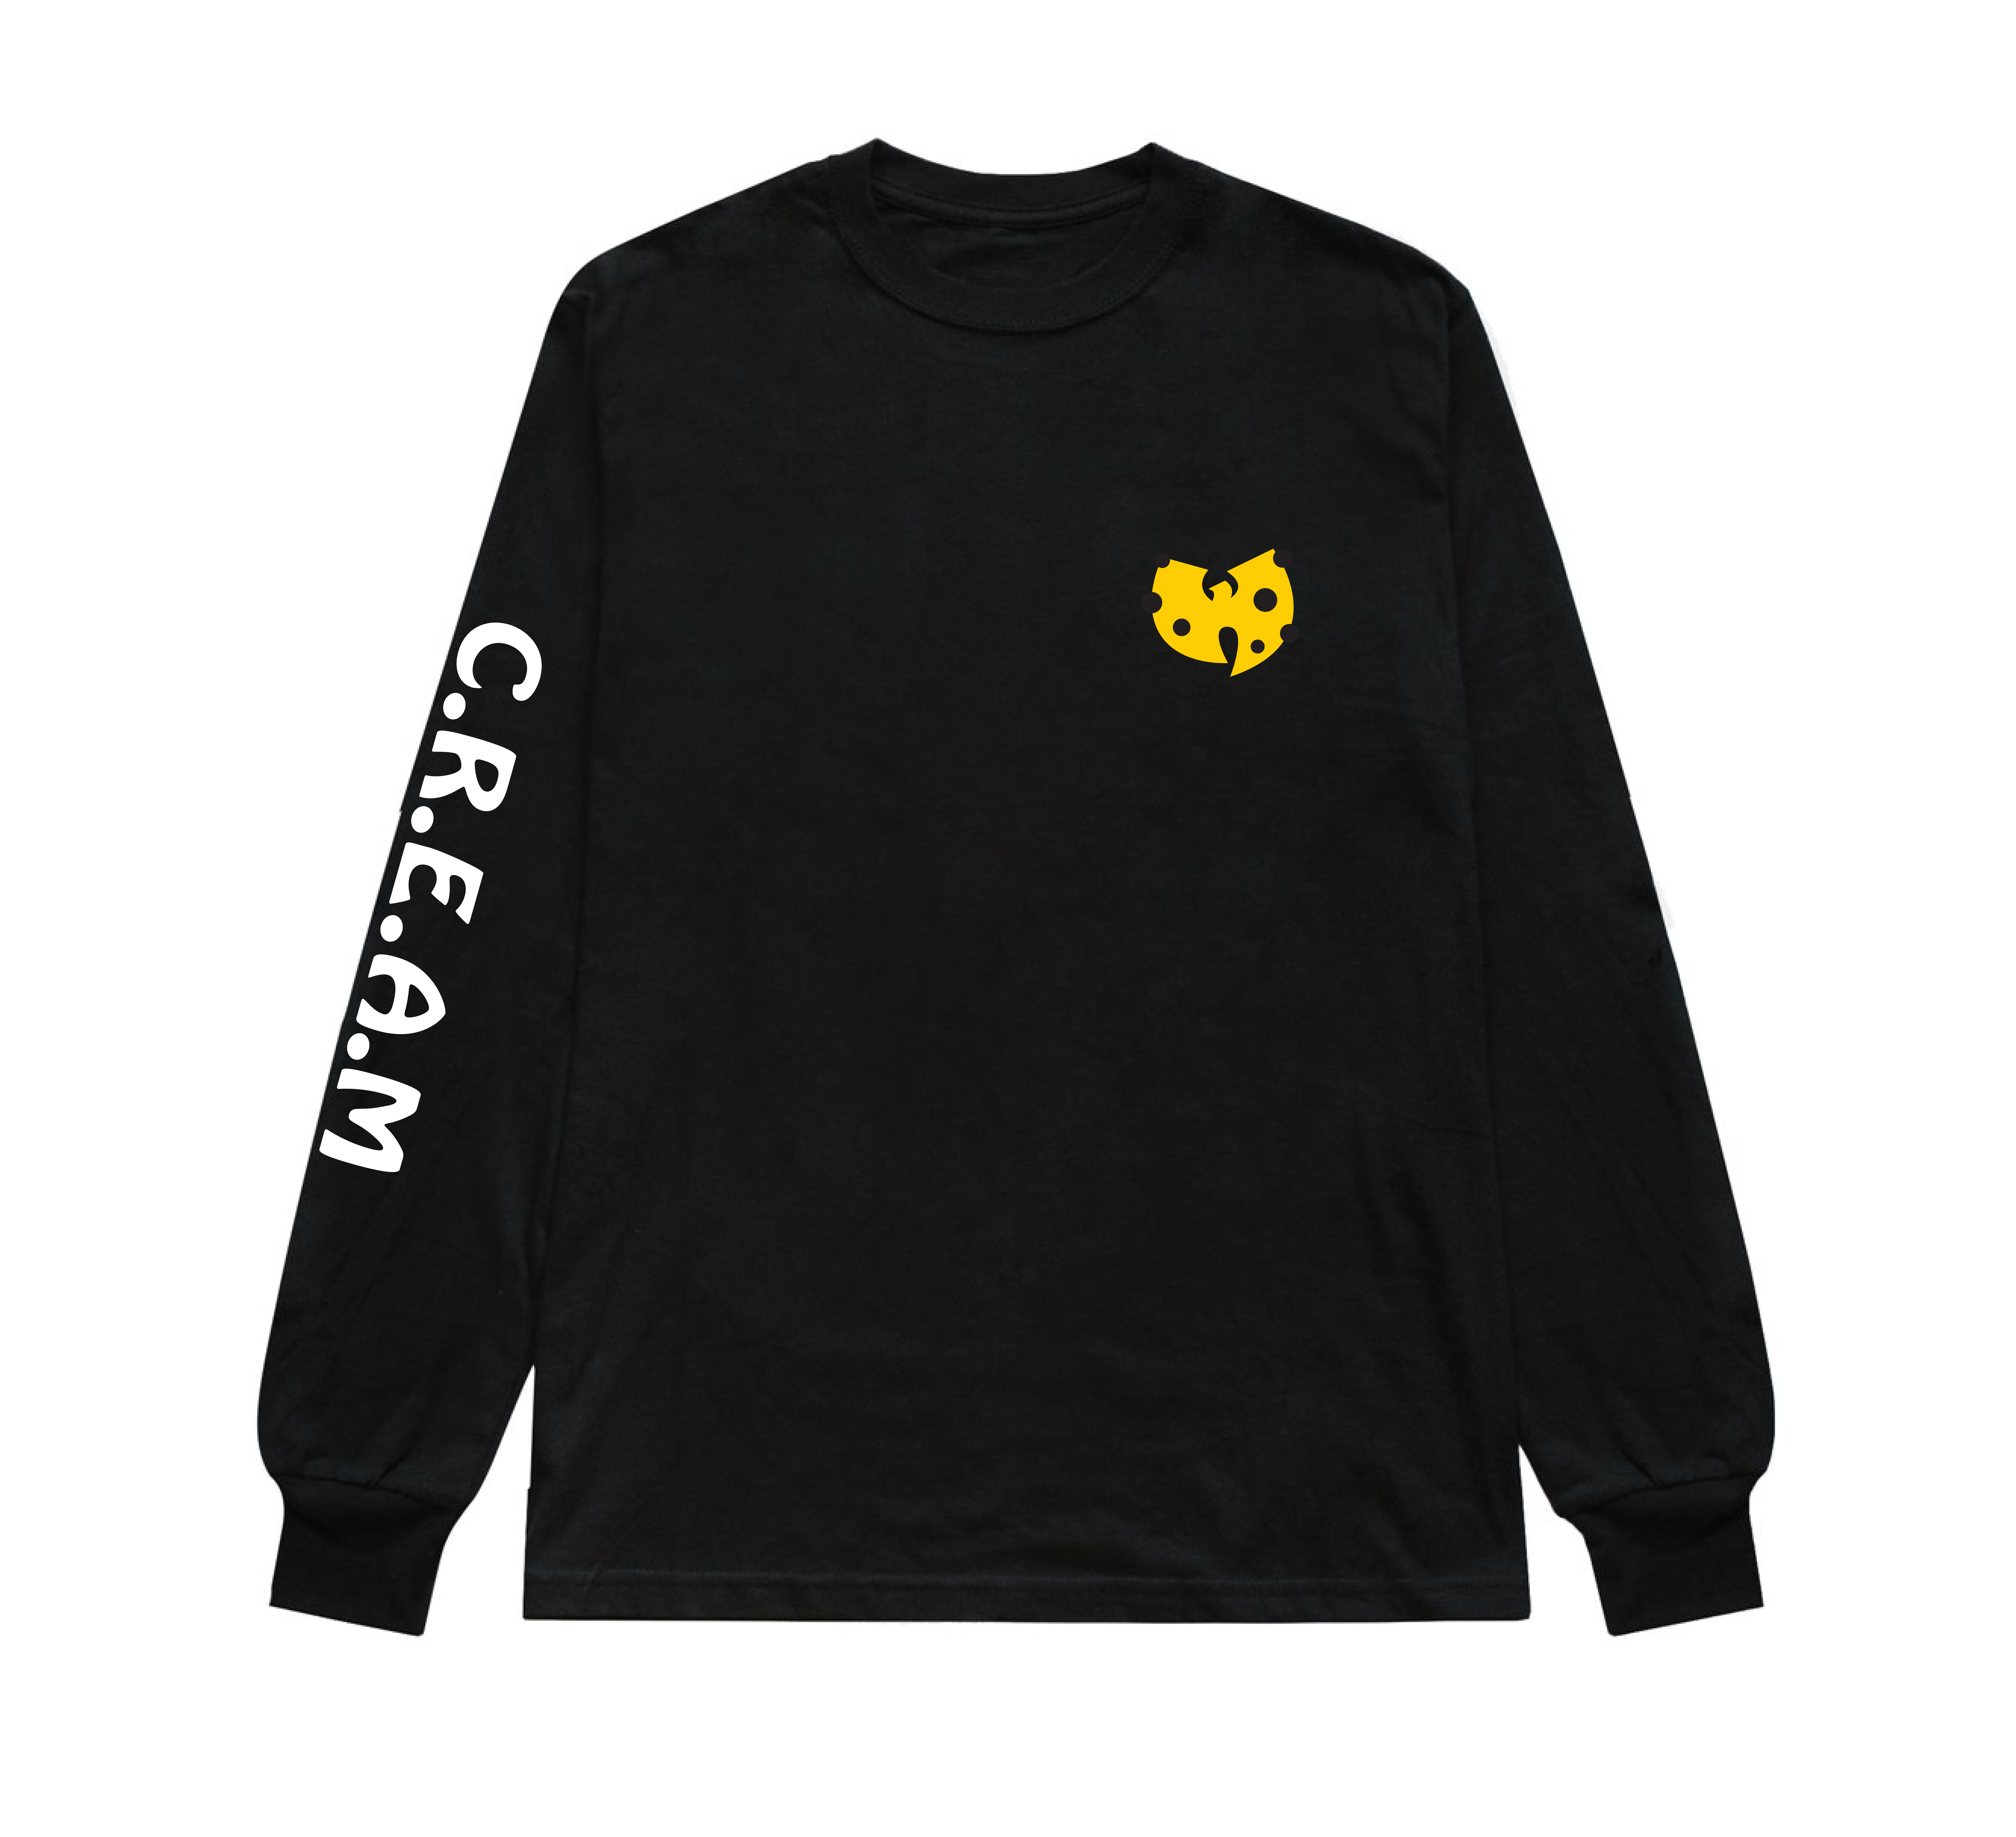 Wine & Rind C.R.E.A.M. Long Sleeve